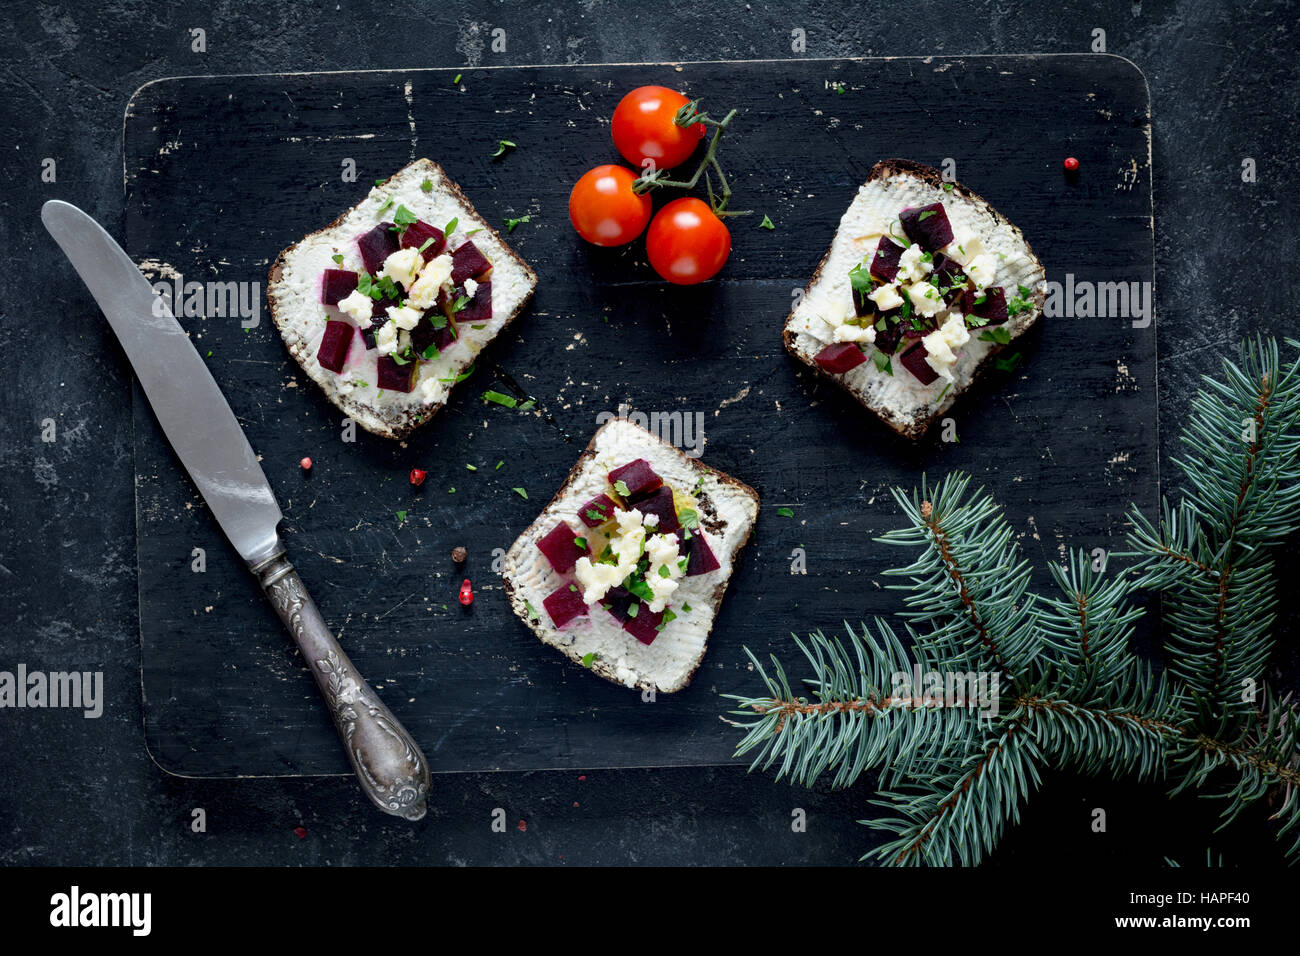 Vegan sandwiches with roasted beet and goat cheese on wooden cutting board, top view - Stock Image